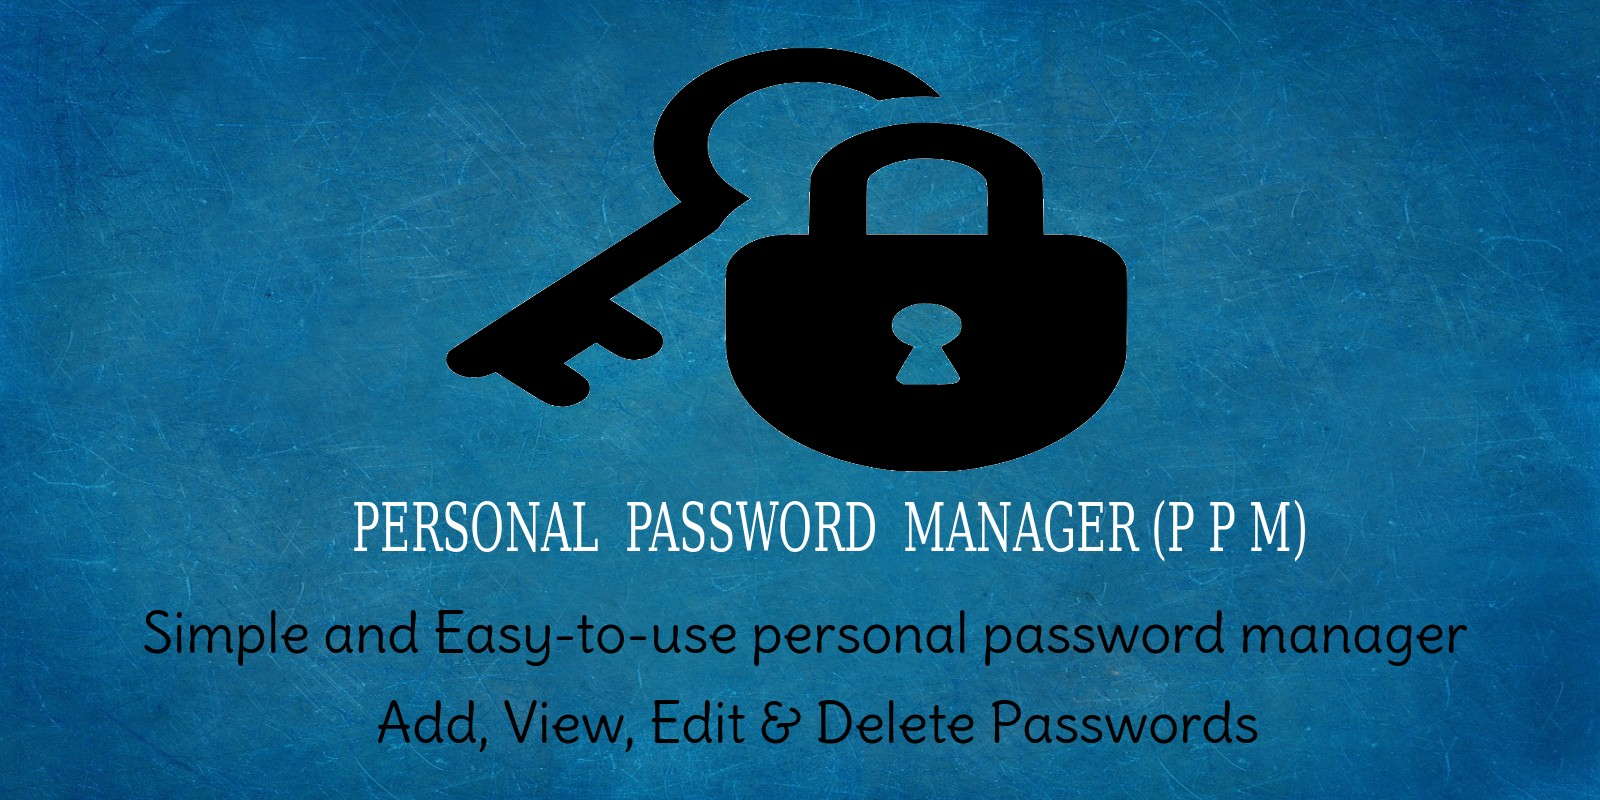 PPM - Personal Password Manager Script